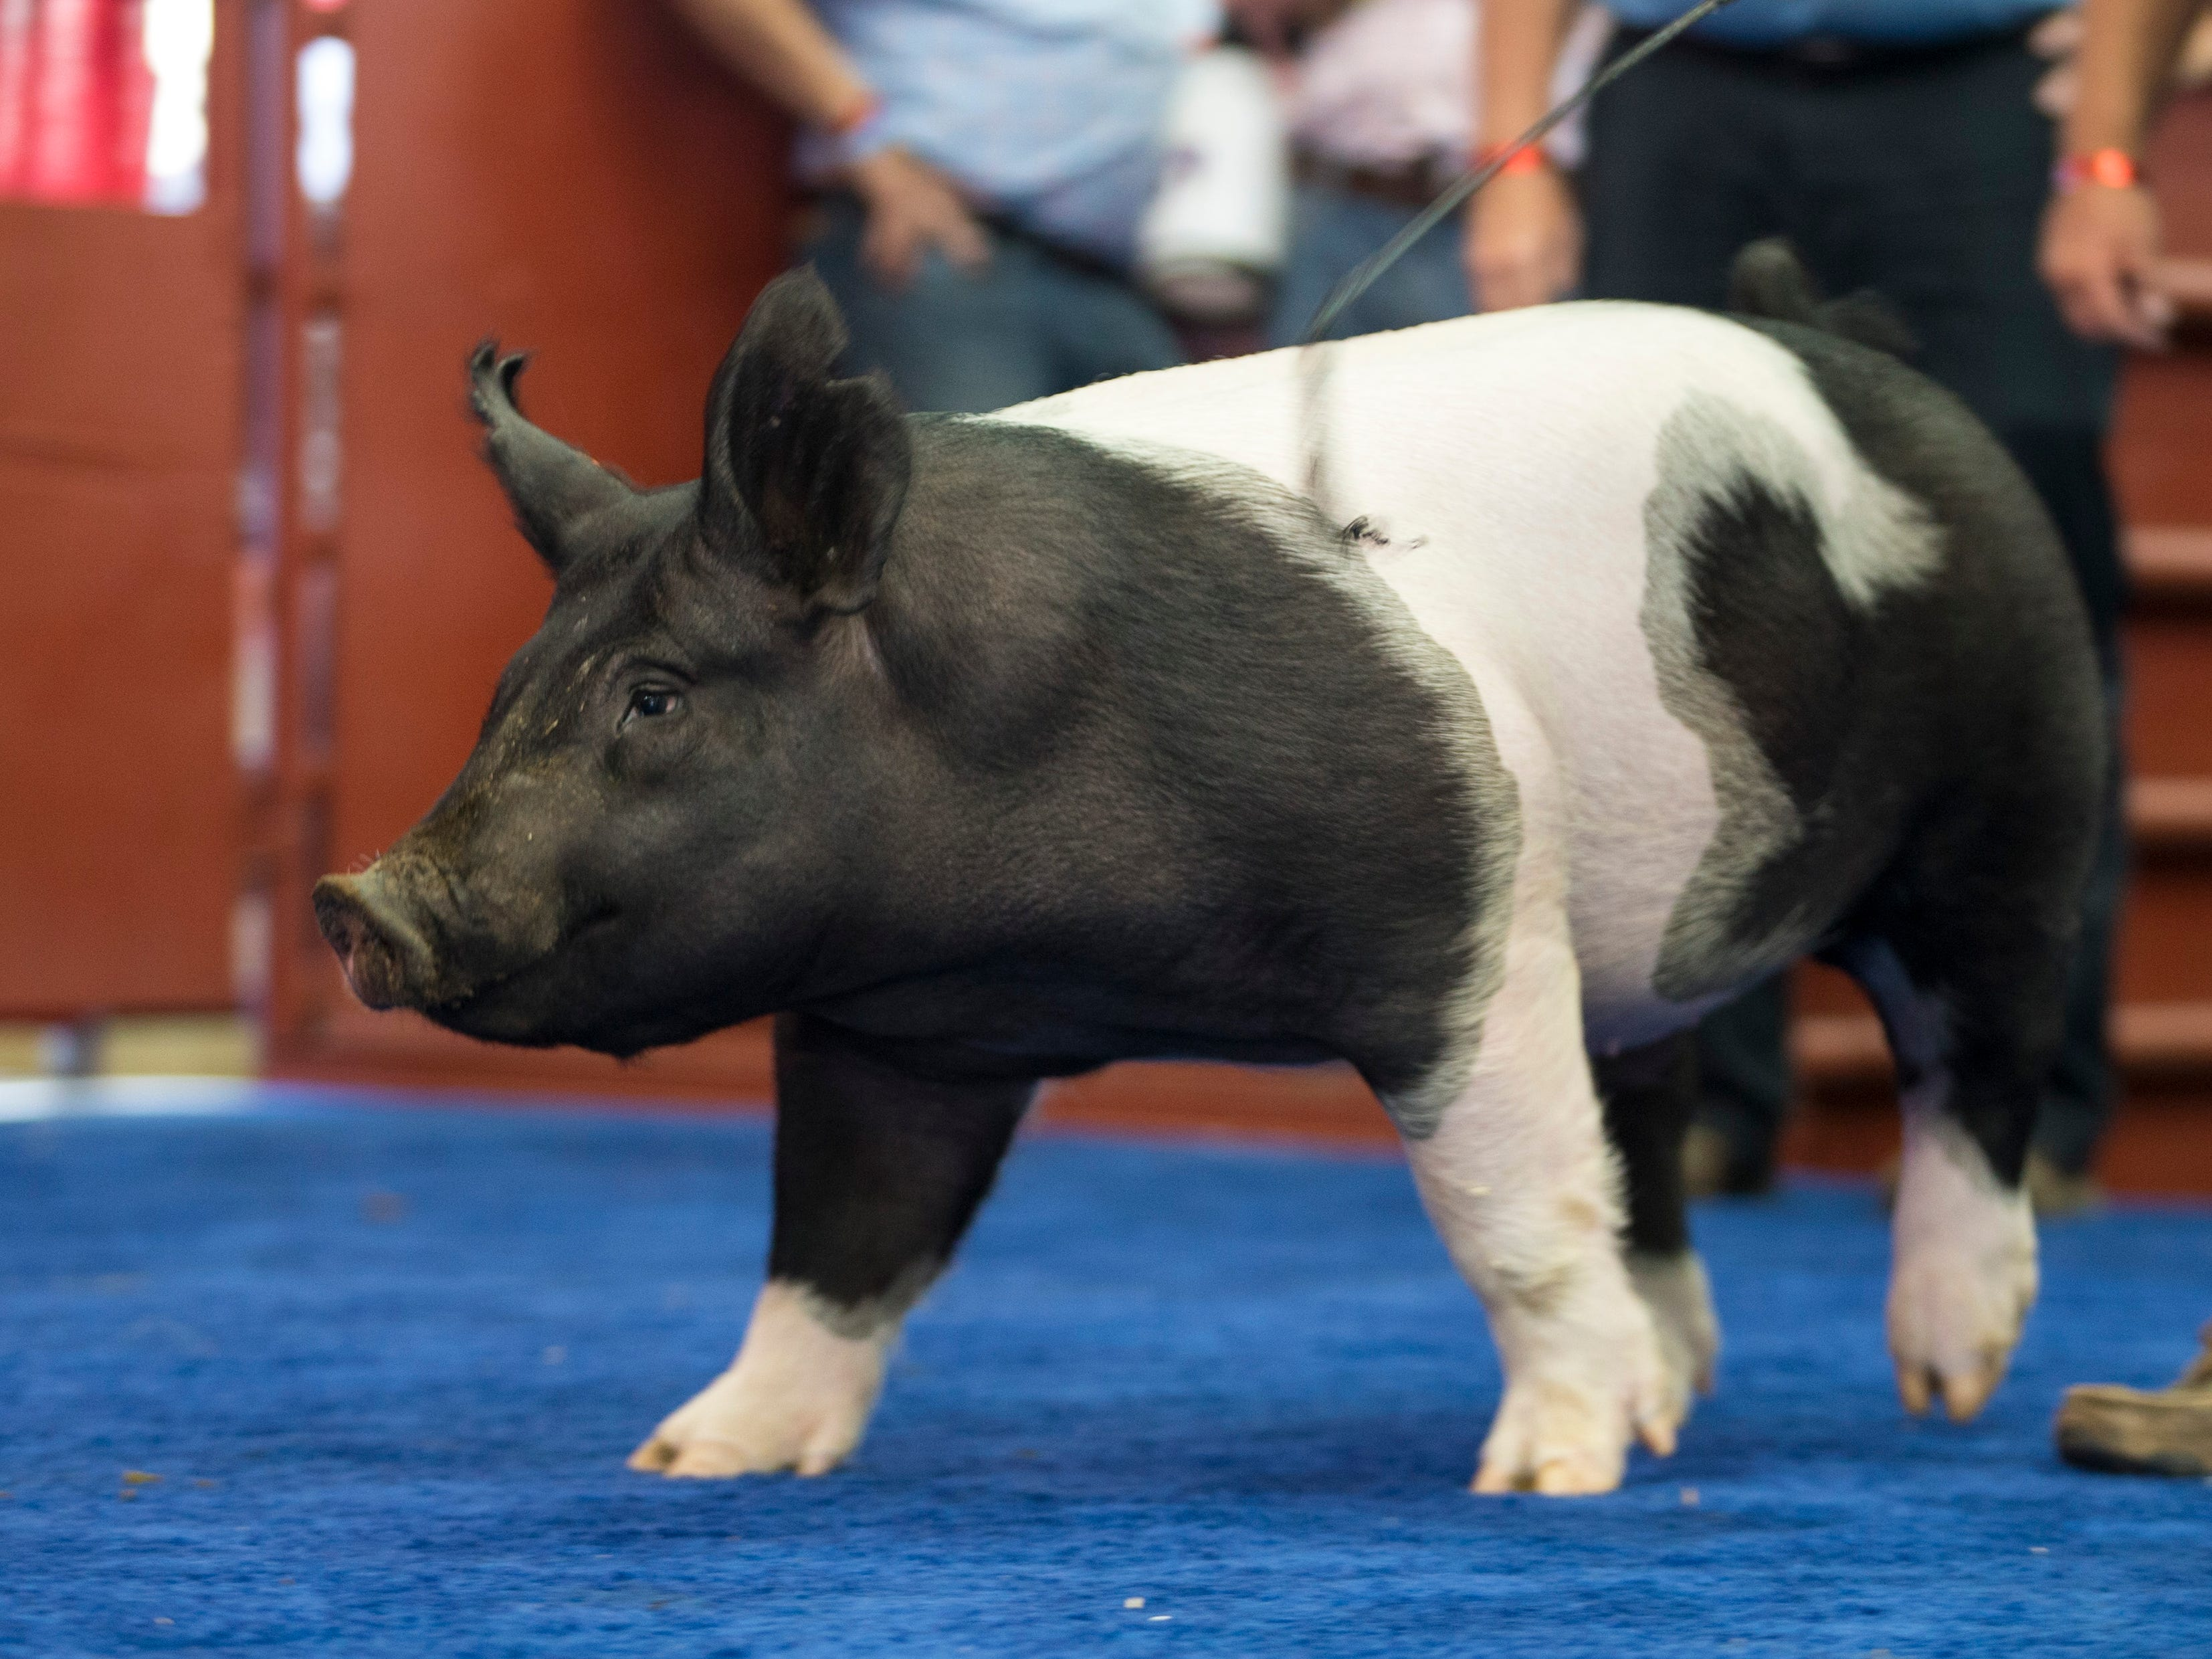 Grand Champion Barrow is exhibited by Brady Wilkes of Union Grove. The Barrow is crossbred and weighs up to 252 lb. Photo by Tyger Williams / Milwaukee Journal Sentinel